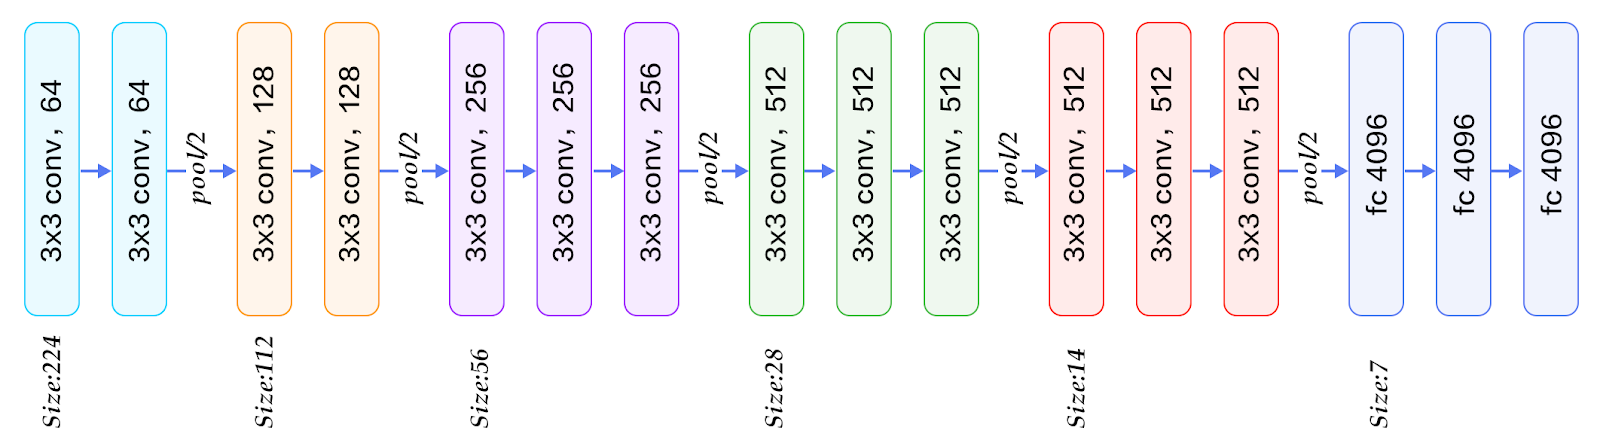 Architecture of VGG-16 with 16 layers.